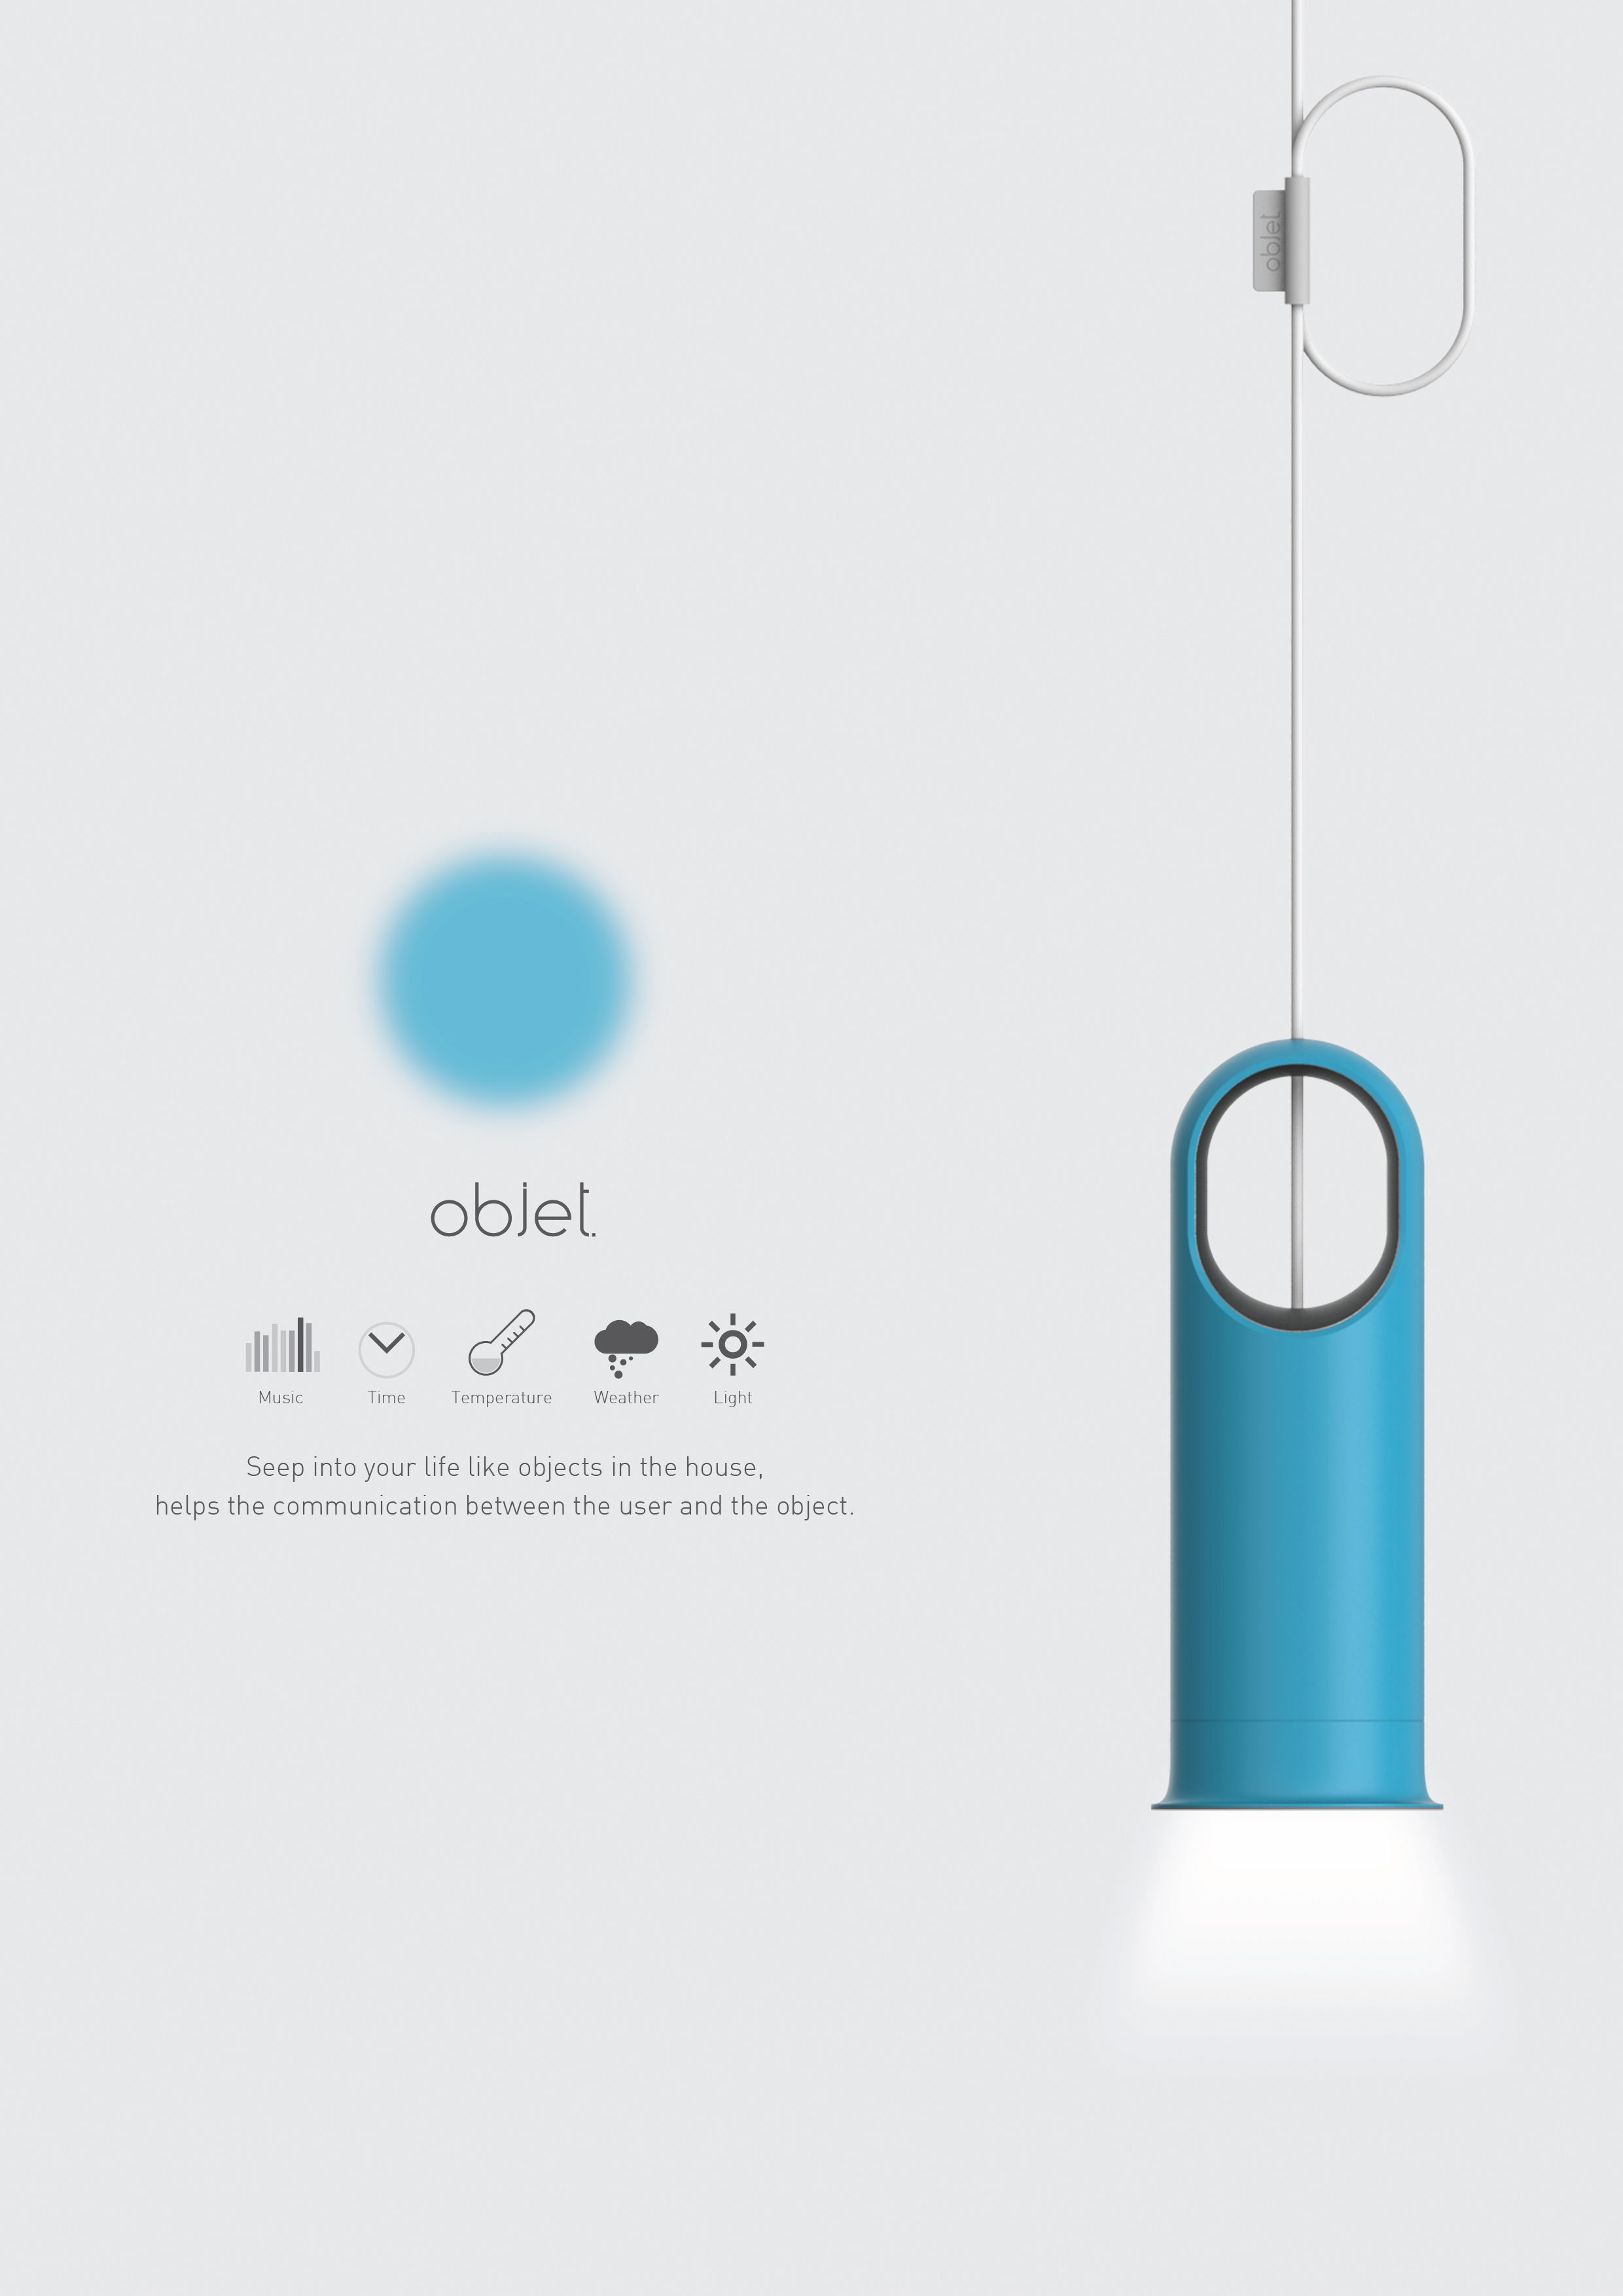 put the function of the internet of things hub to the hanging light assists brighten user u0026 39 s home